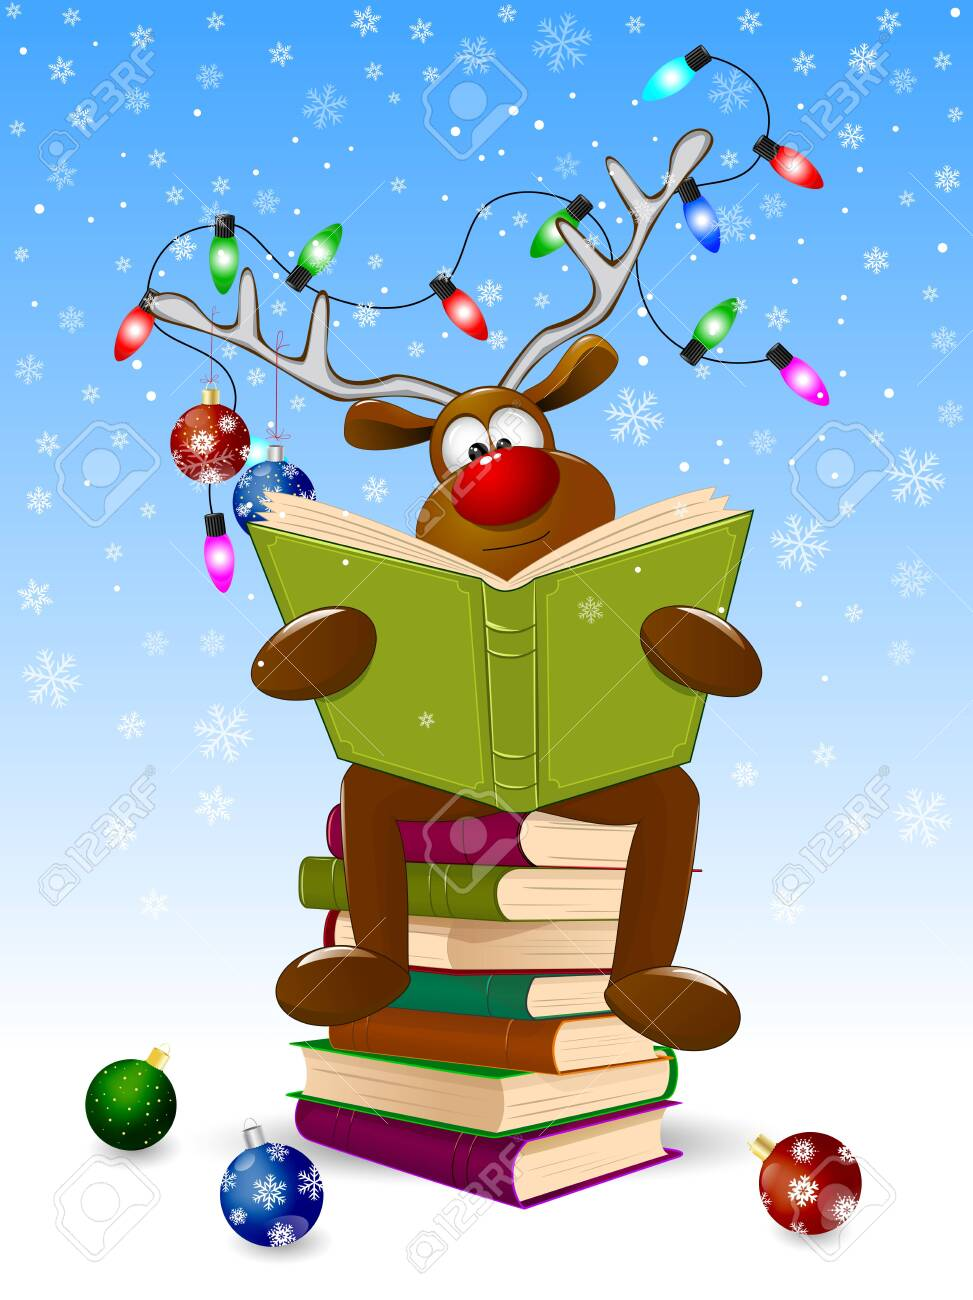 Cartoon deer reads a book for Christmas. A deer with a book and with Christmas decorations on a winter background. A deer is sitting on a stack of books. - 131902808